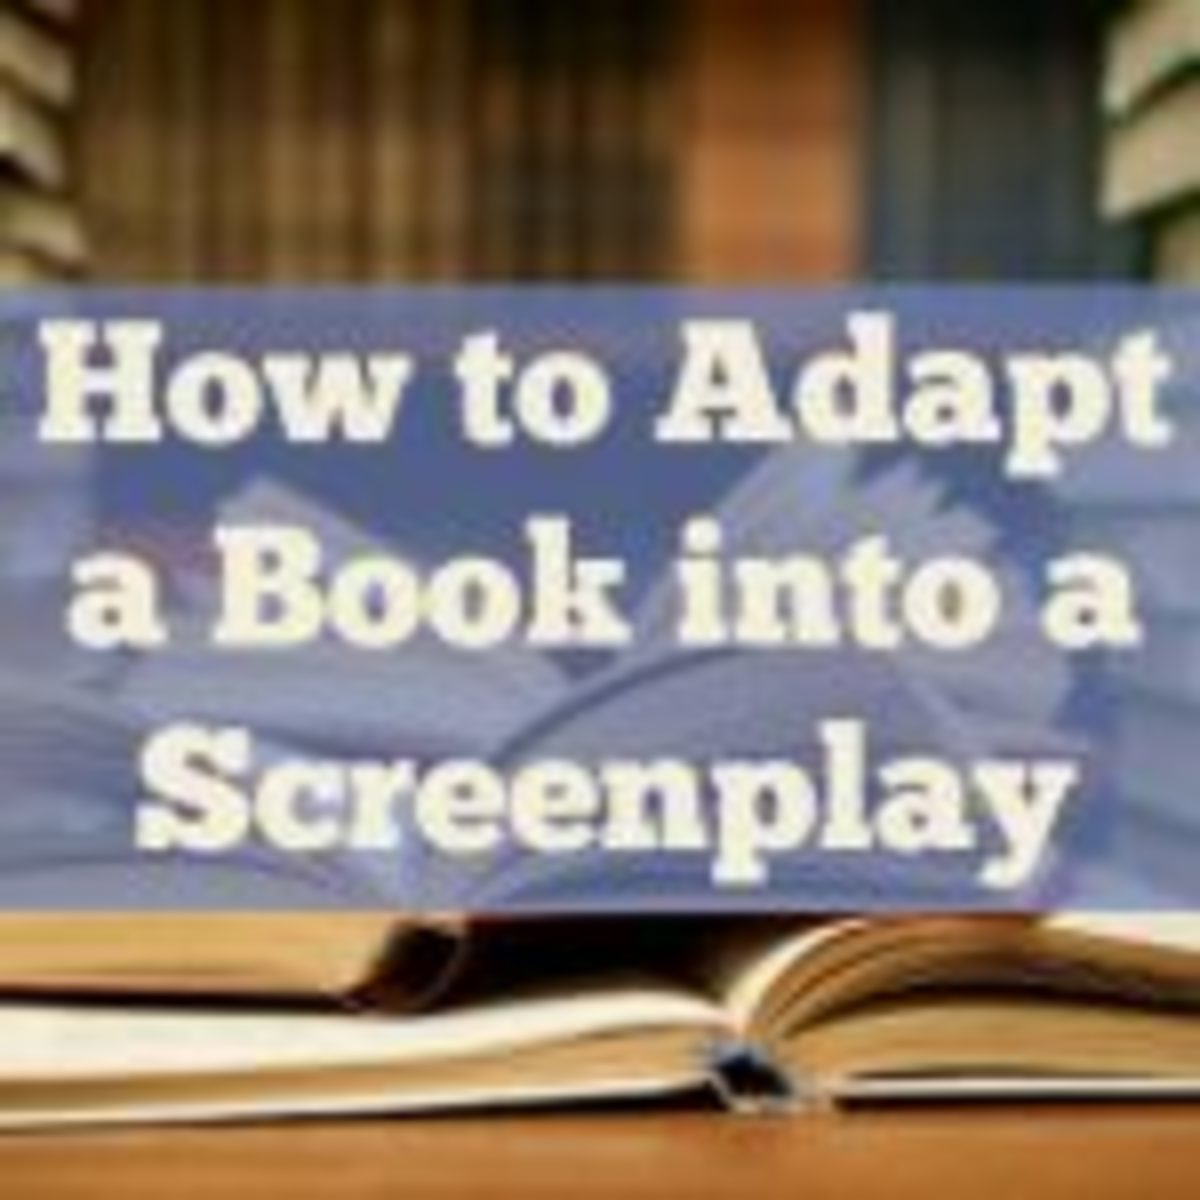 adapting-books-into-screenplays